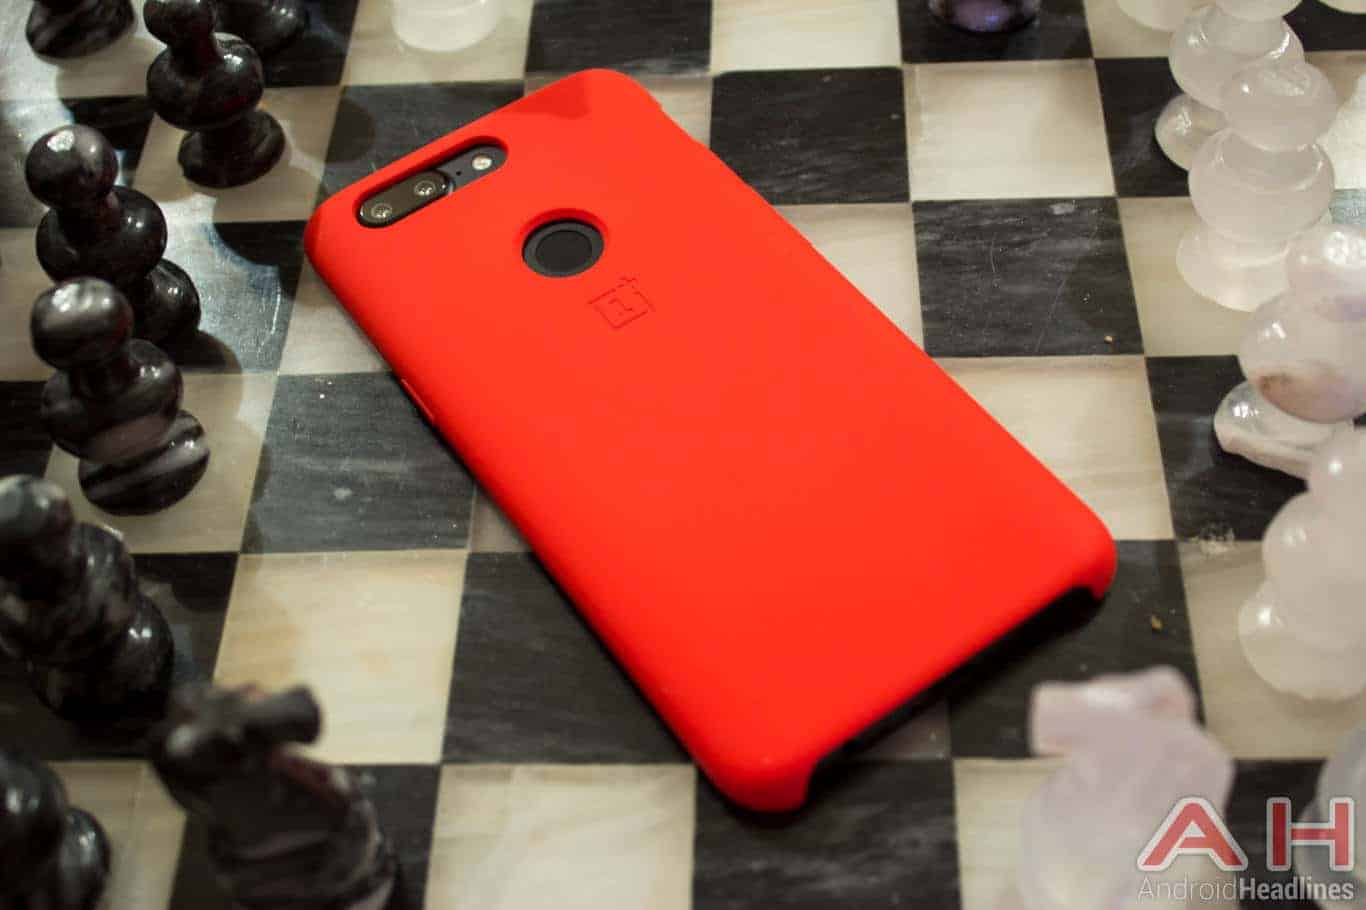 Oneplus 5t AH NS 44 red case